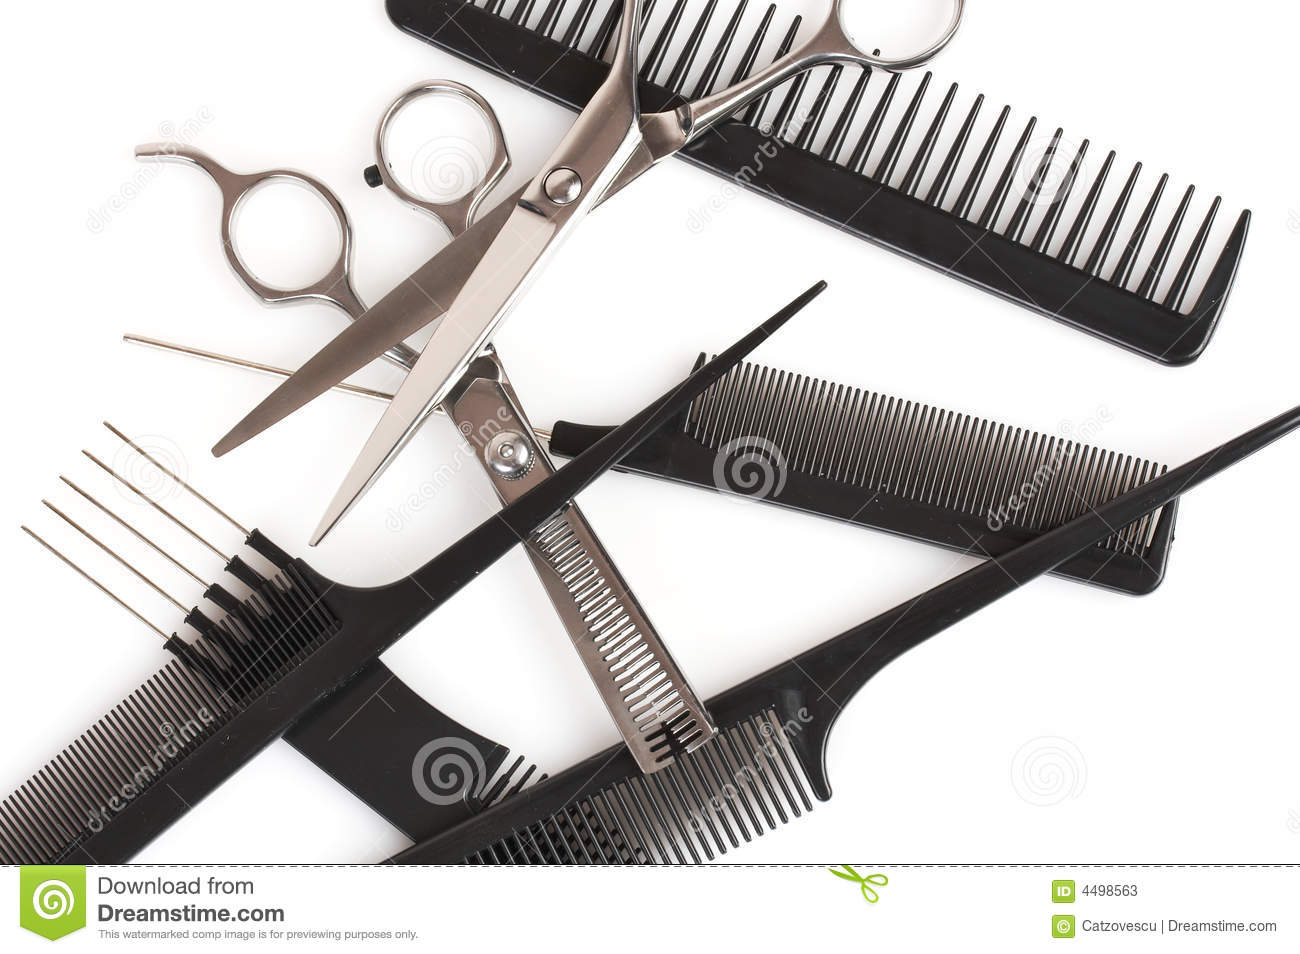 Set Of Combs And Scissors Hairstyle Accessories Stock Photos  Image 4498563